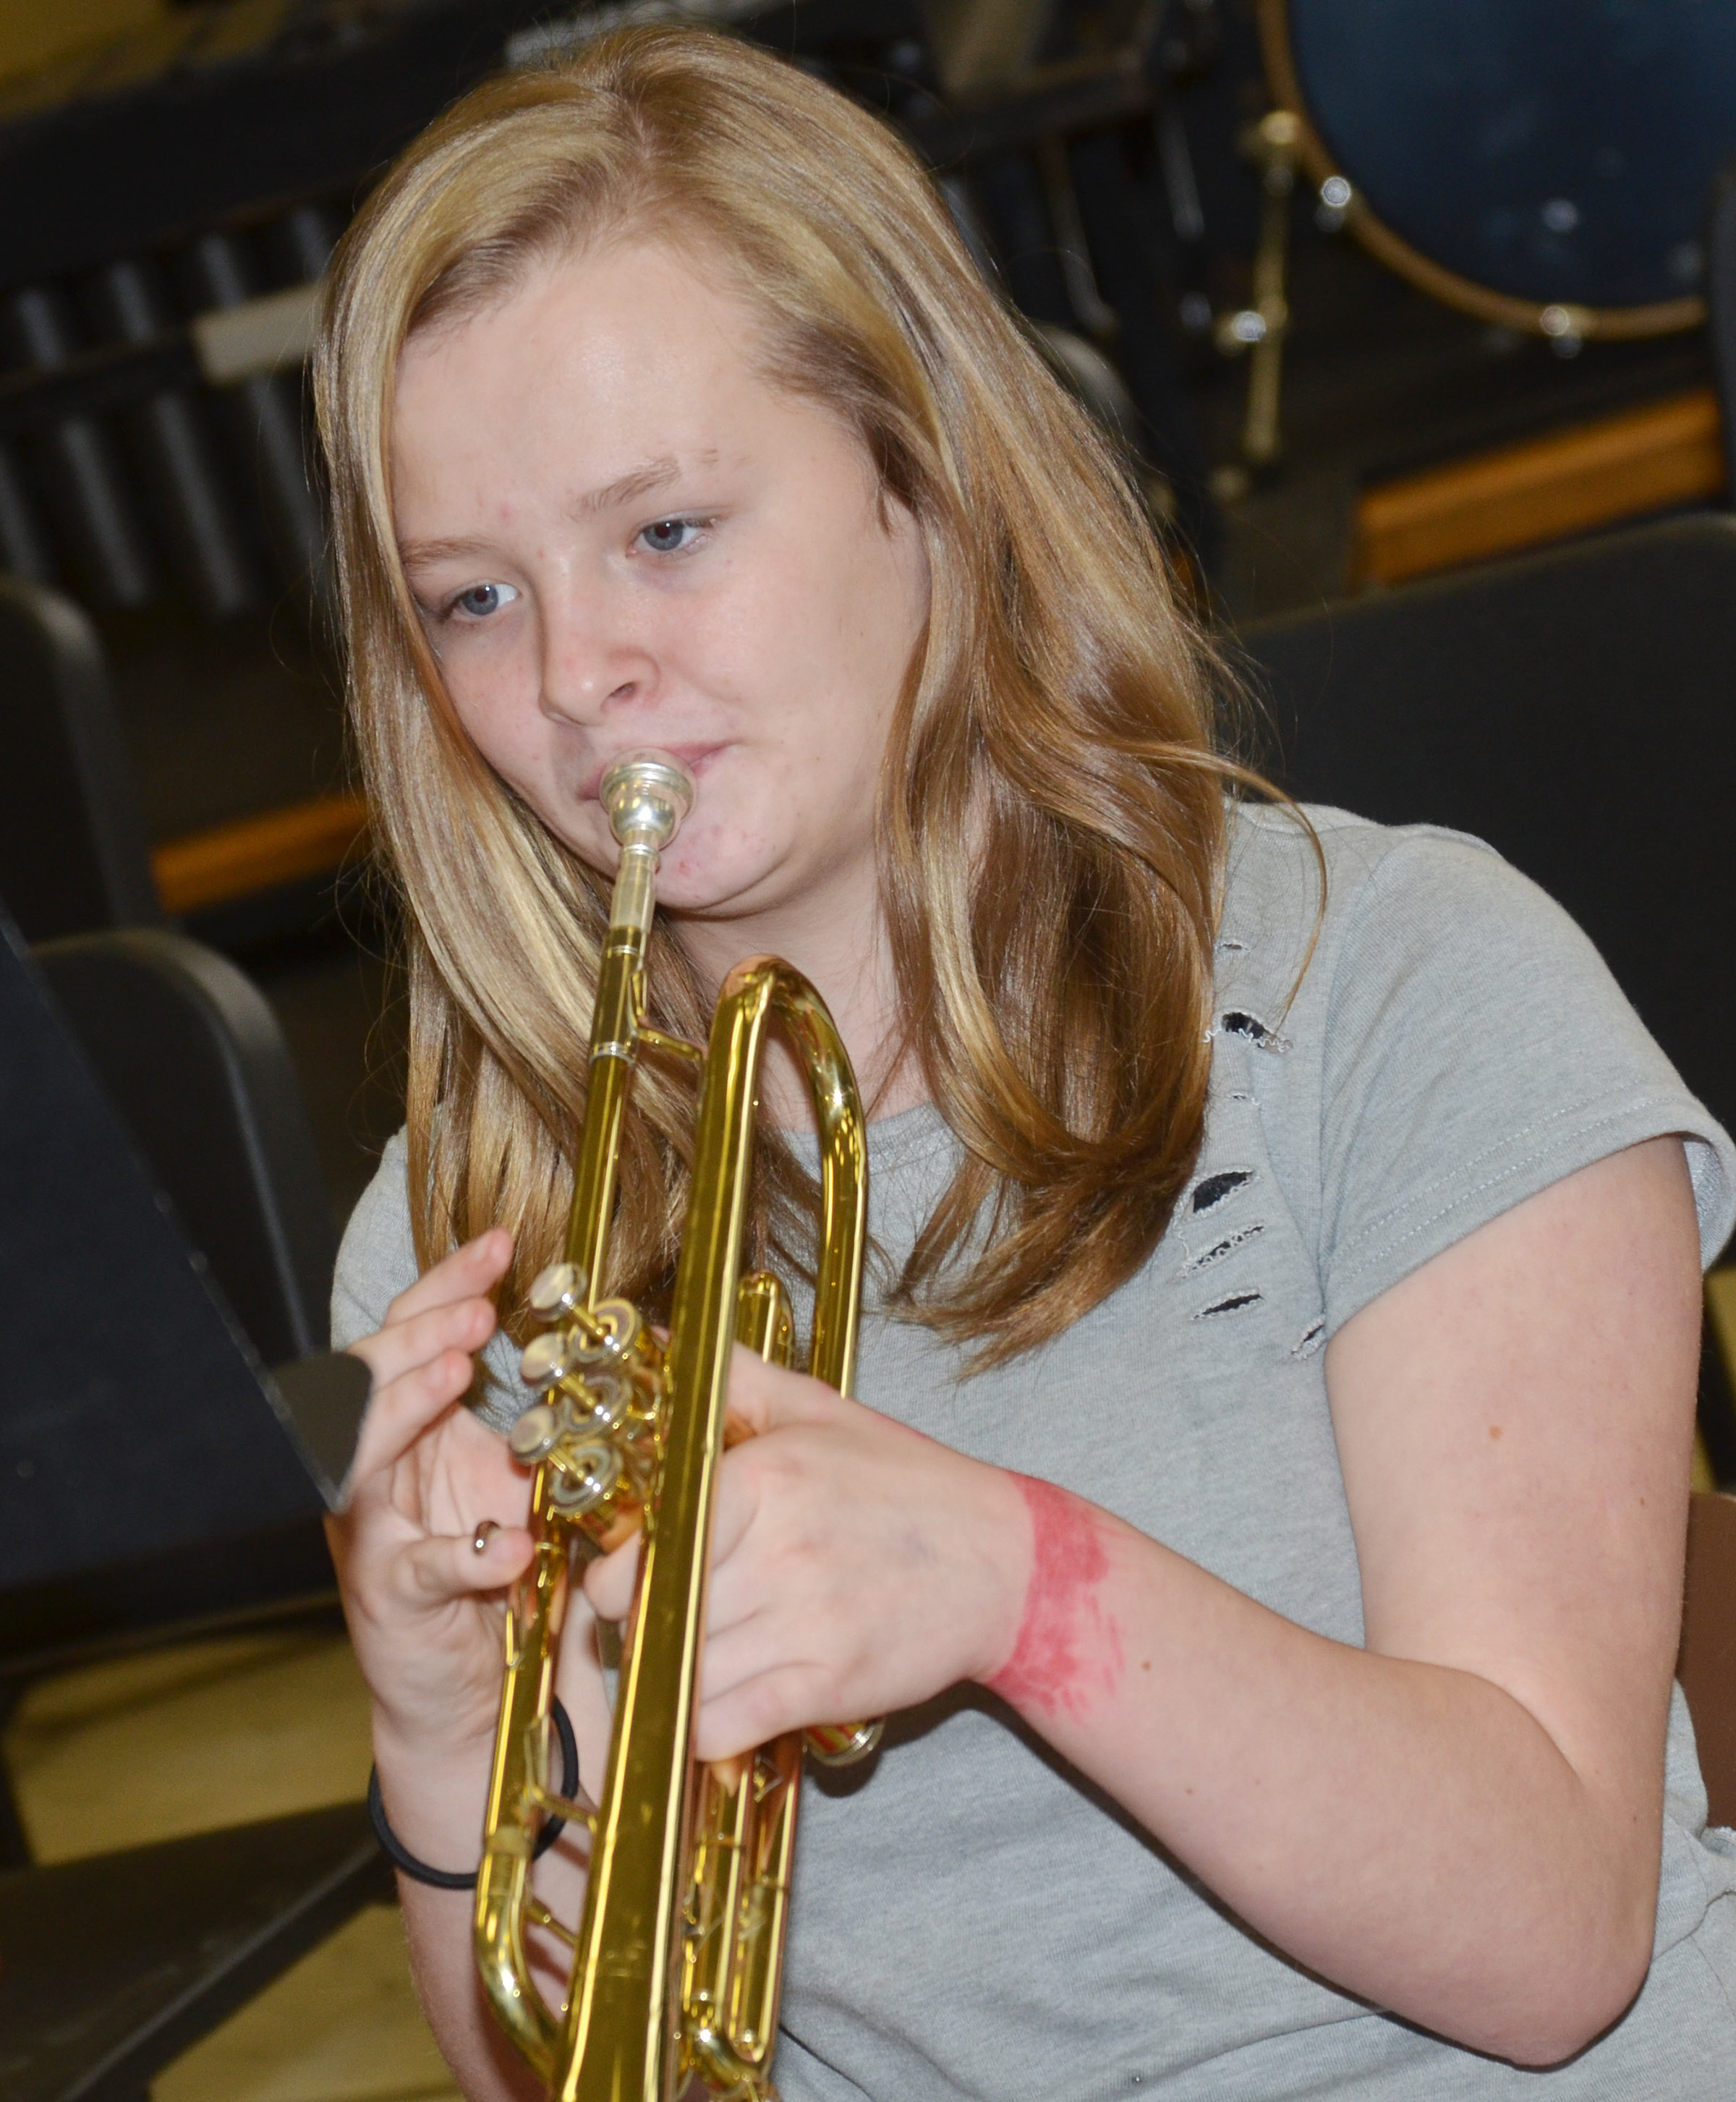 CMS seventh-grader Davanna Reardon plays the trumpet.